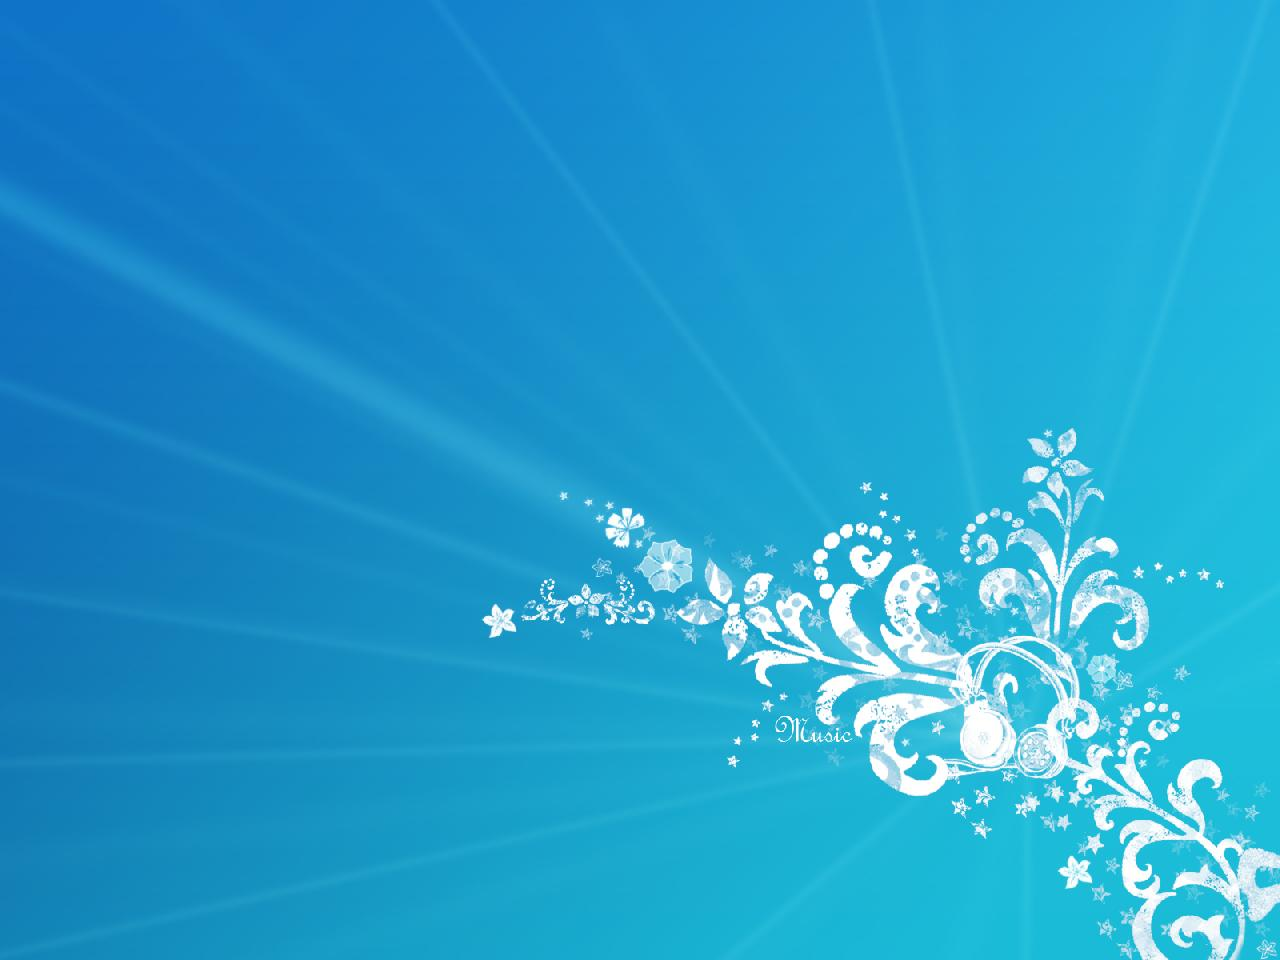 Free Background Wallpapers9 · Free Background Wallpapers